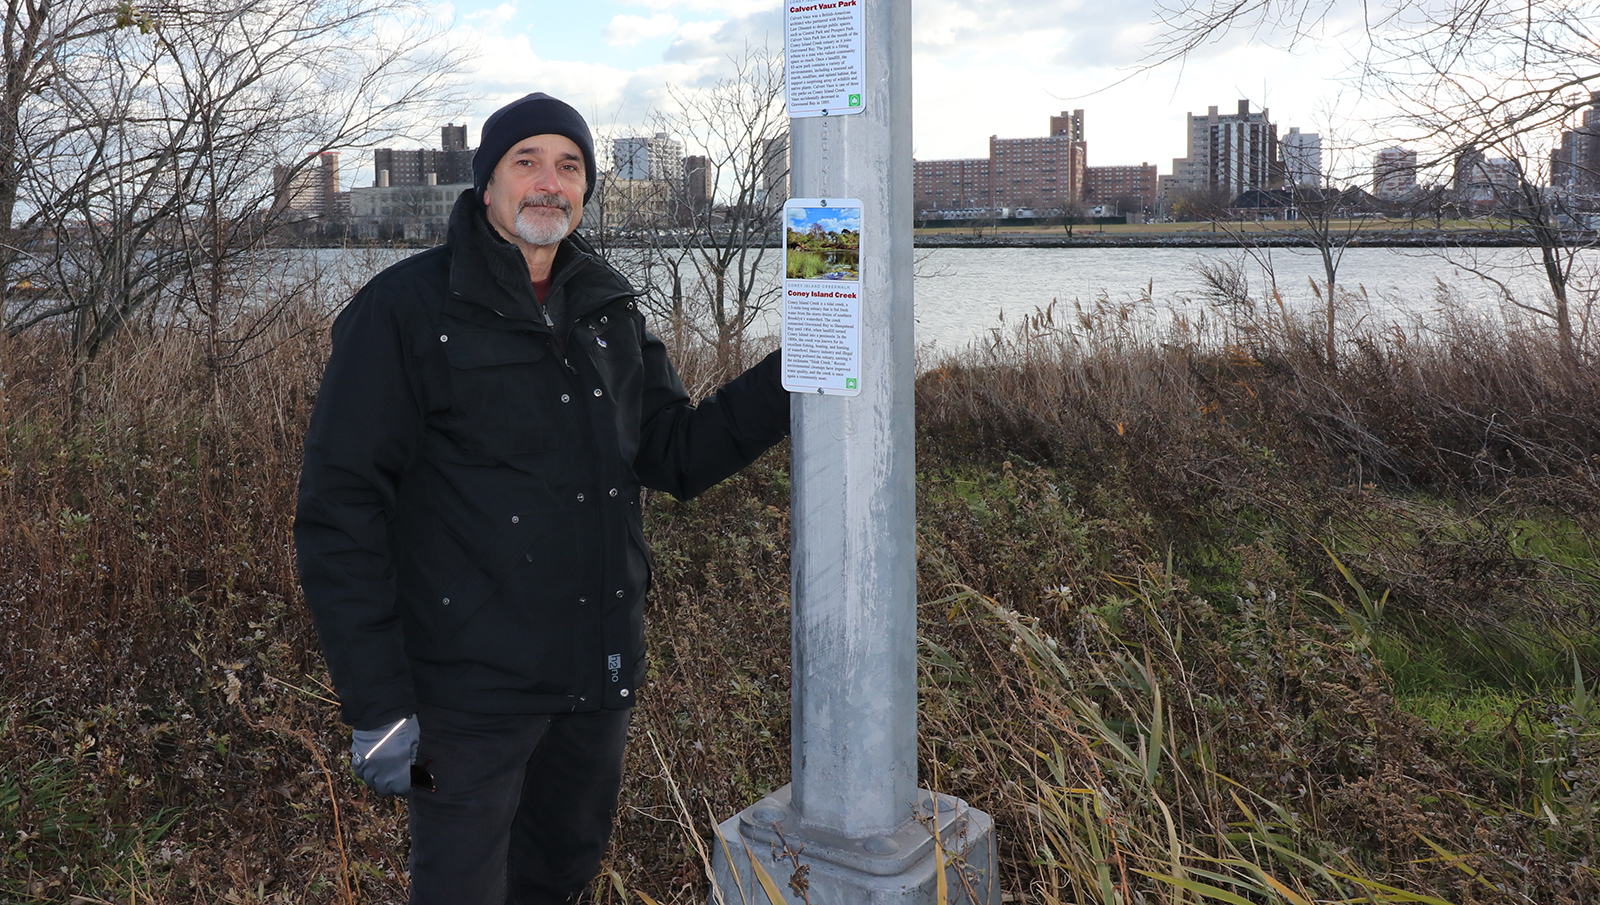 Charles Denson at Coney Island Creek